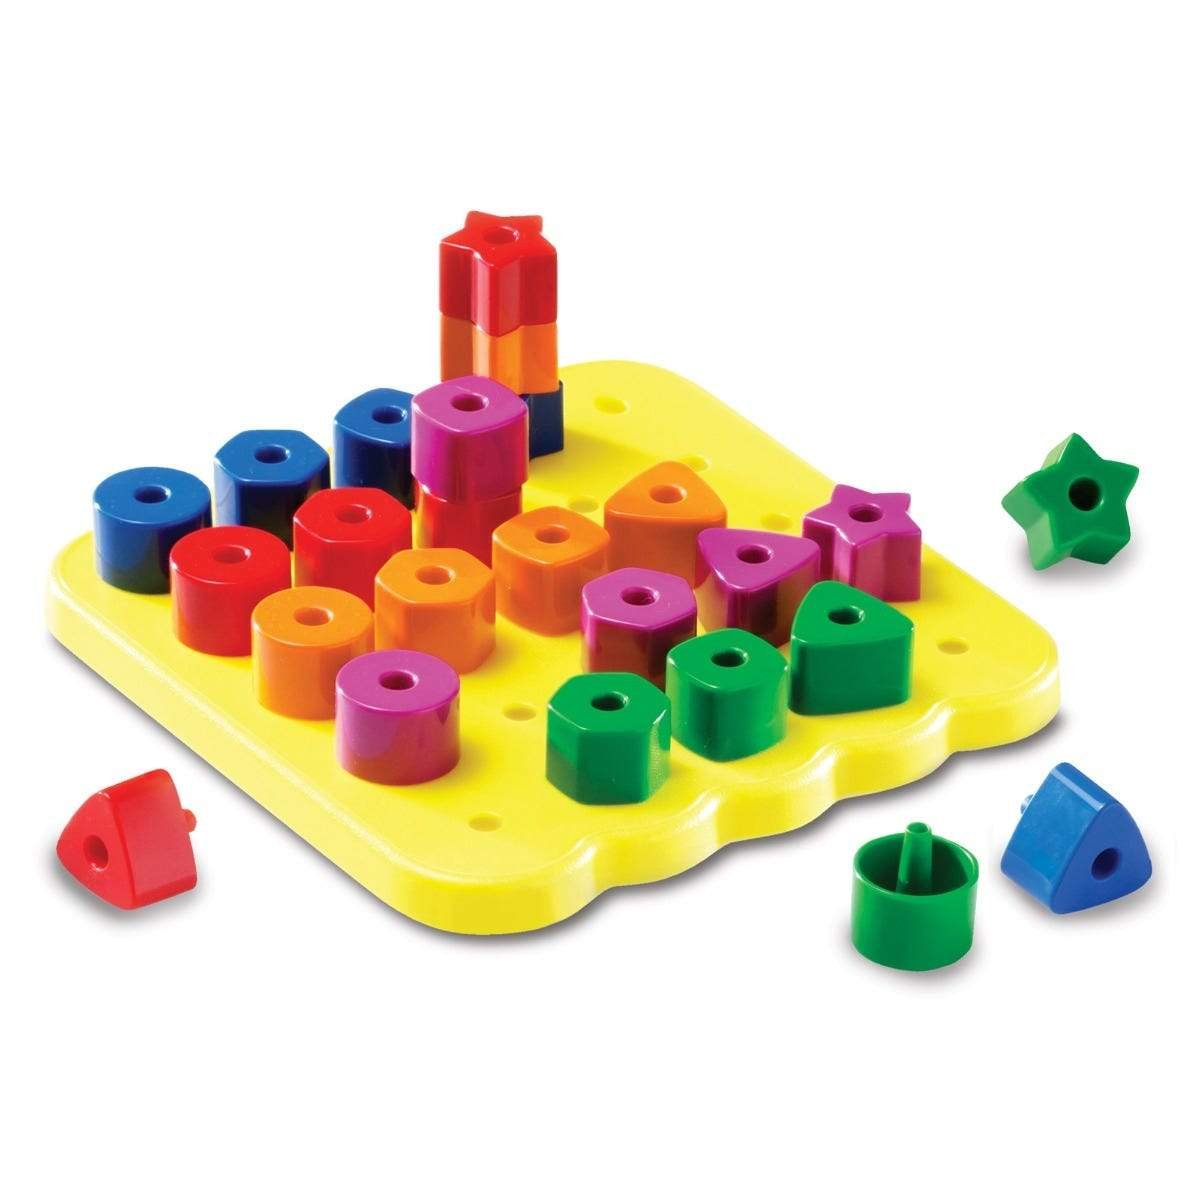 Stacking Shapes Pegboard - The Montessori Room